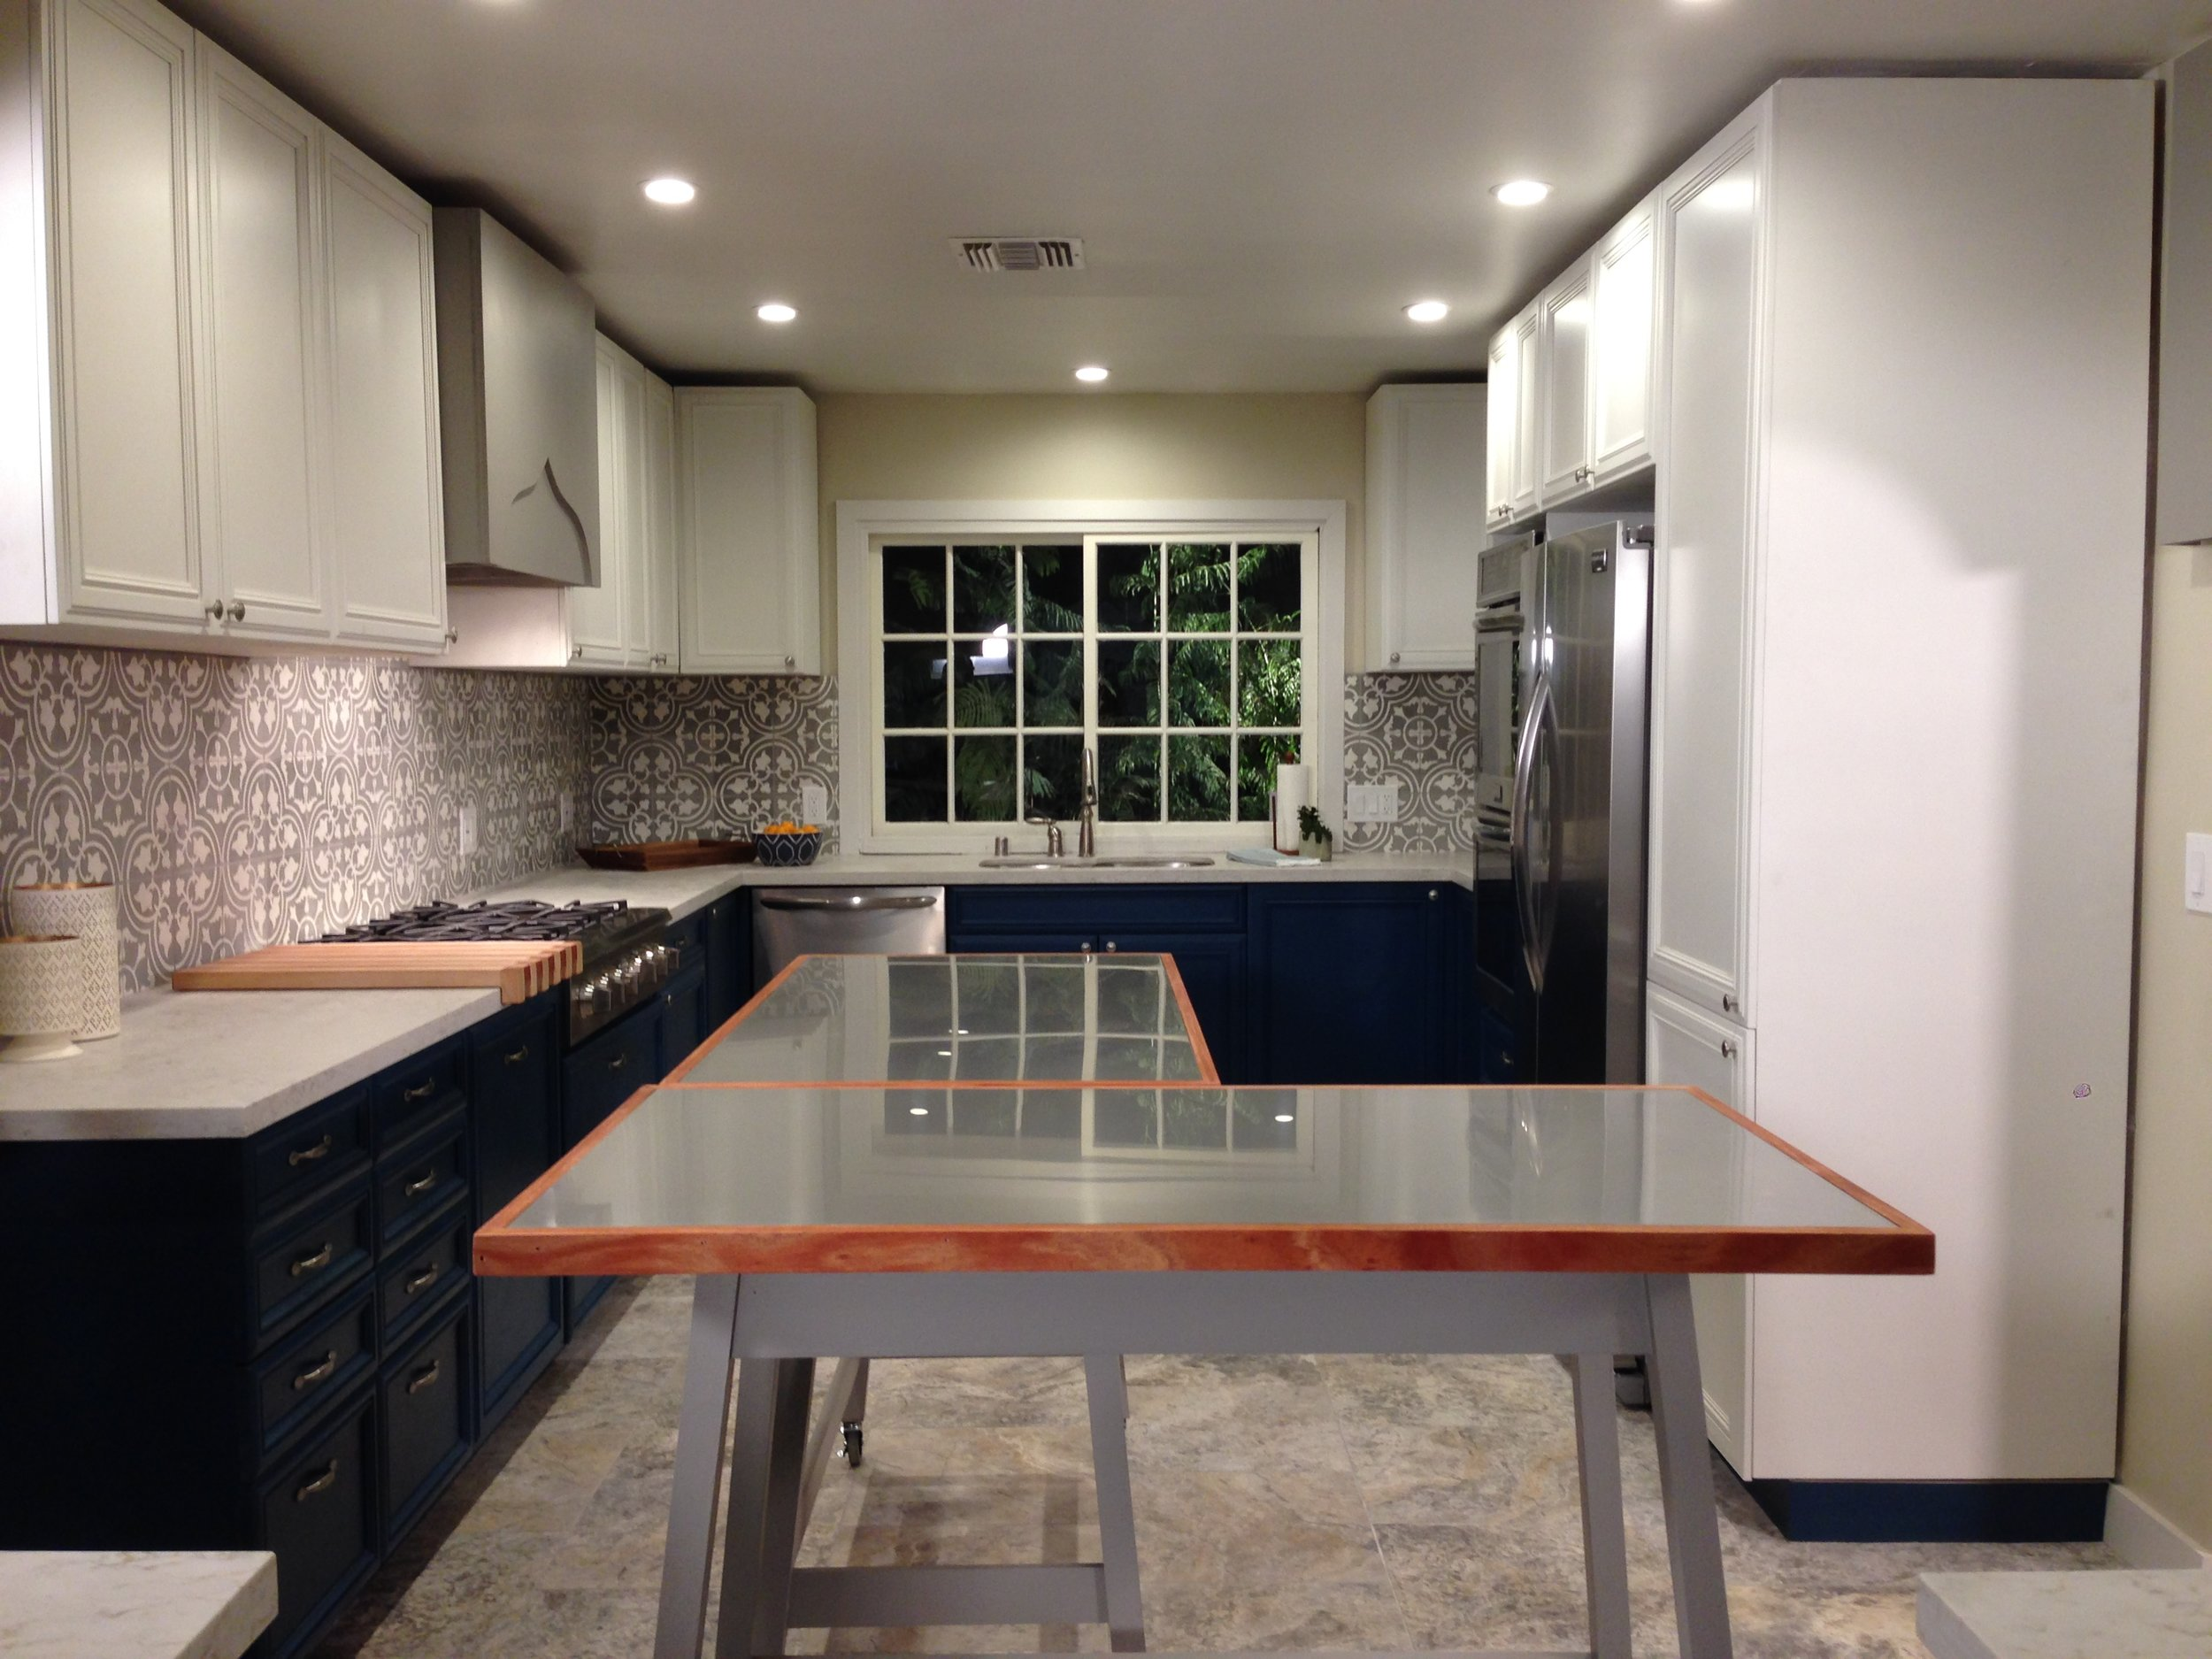 Ep. 1102: Arched Mediterranean Kitchen